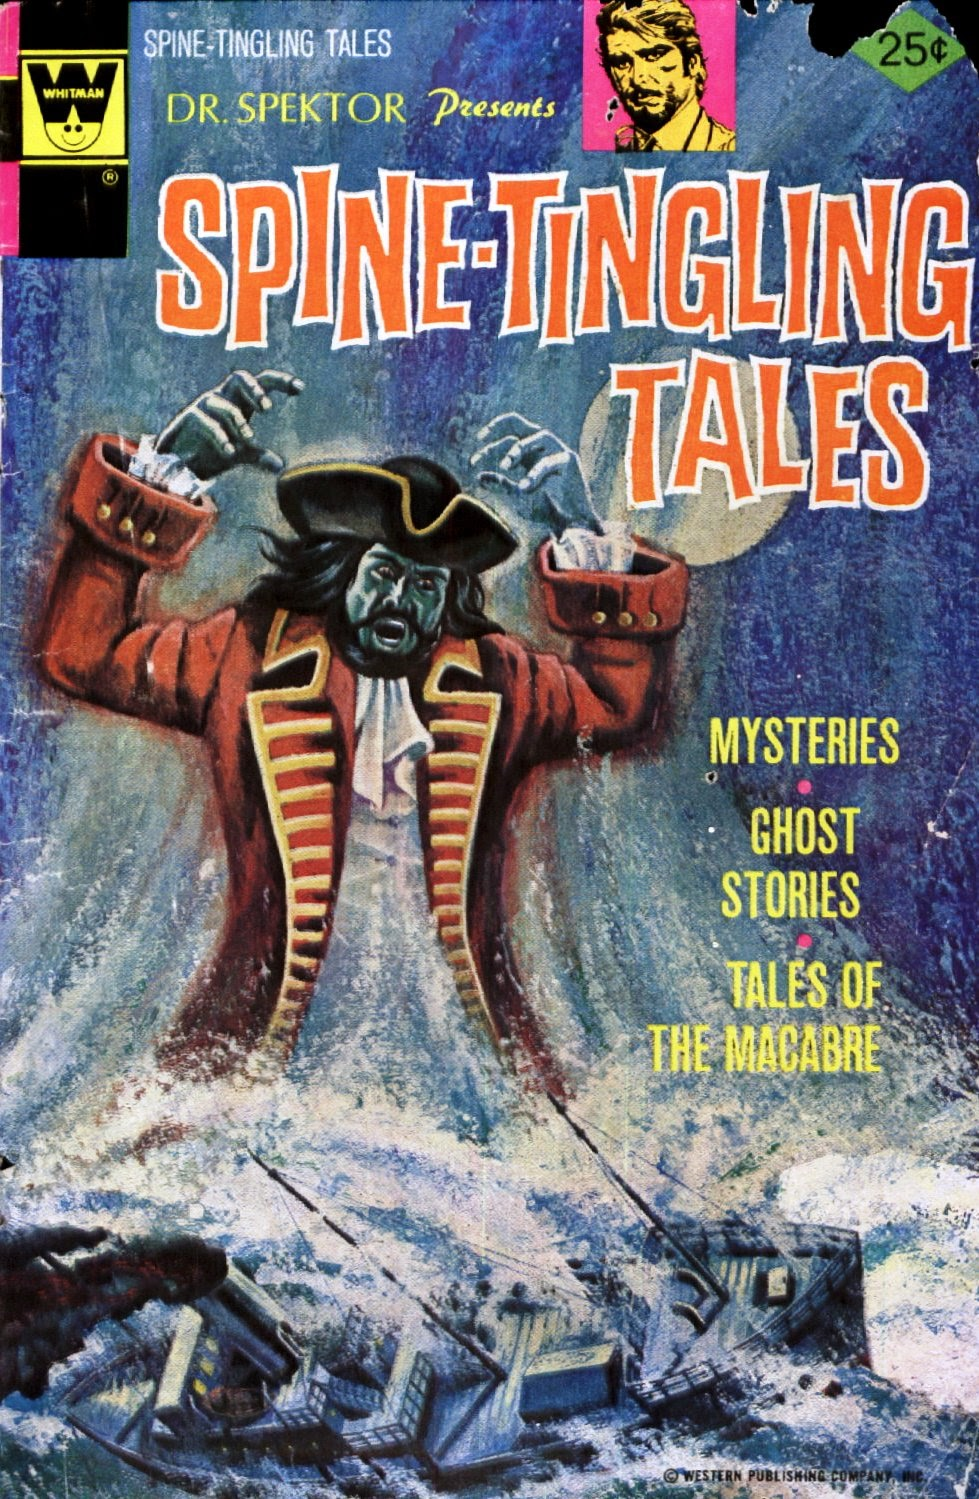 Read online Dr. Spektor Presents Spine-Tingling Tales comic -  Issue #4 - 1